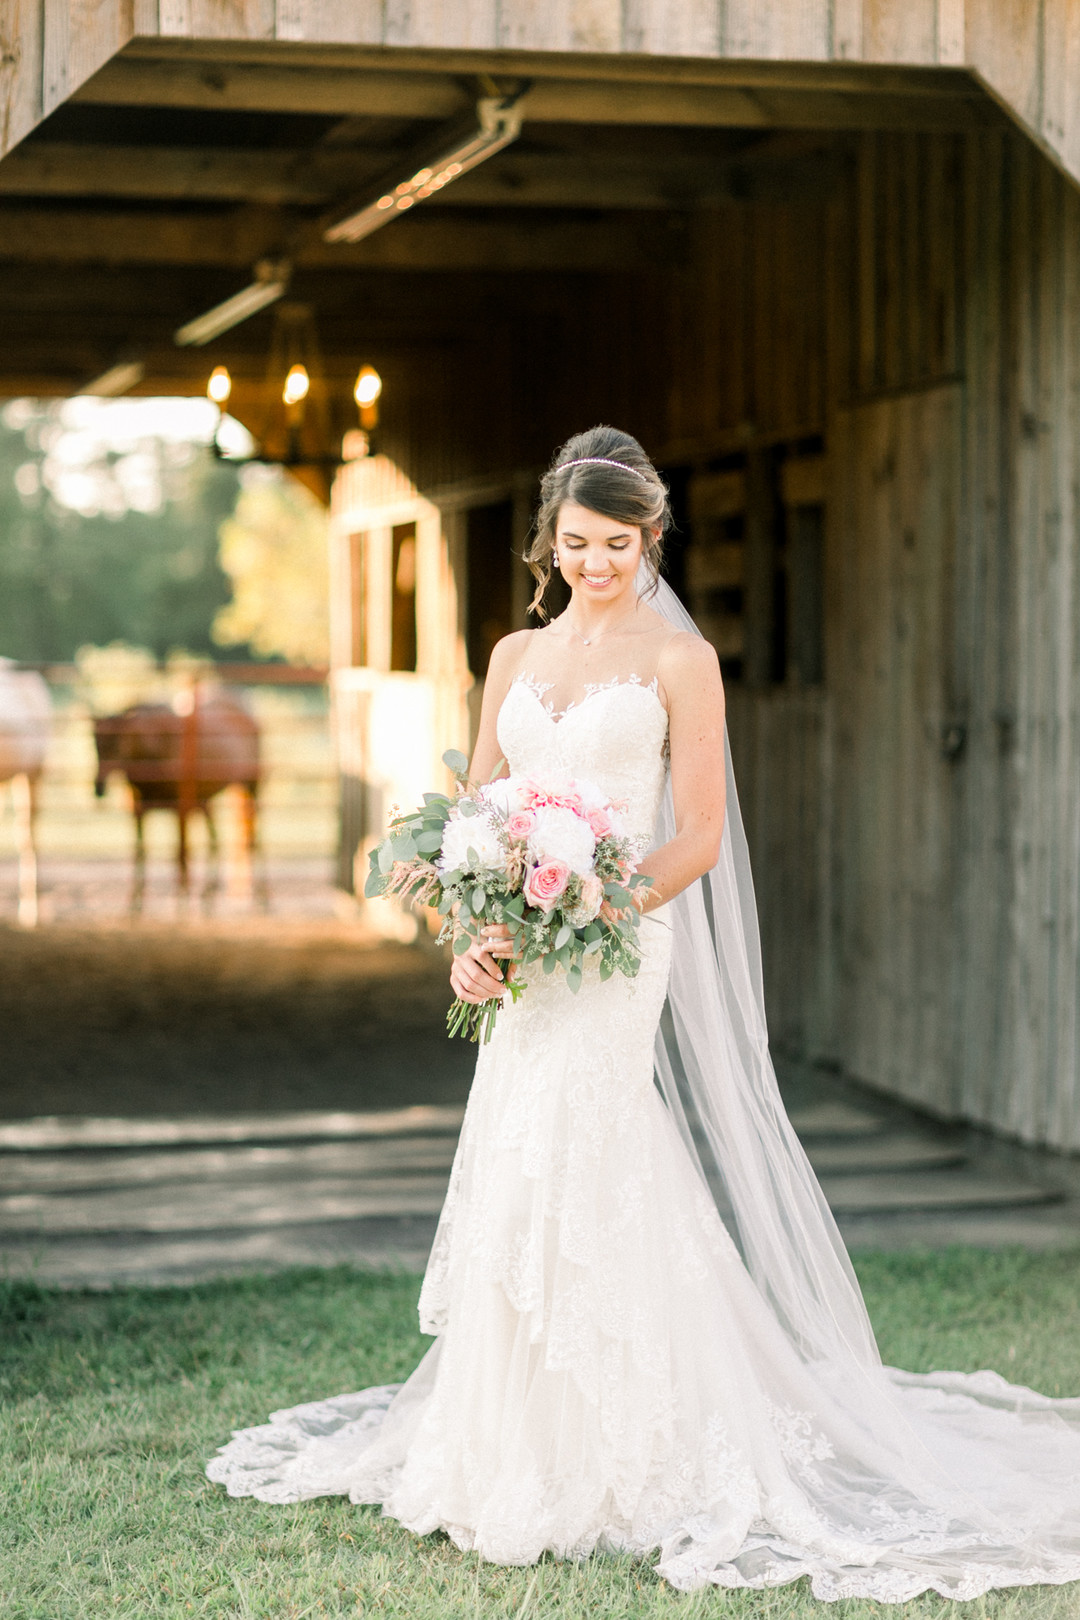 Barn Bridal Portrait in Horse Stable